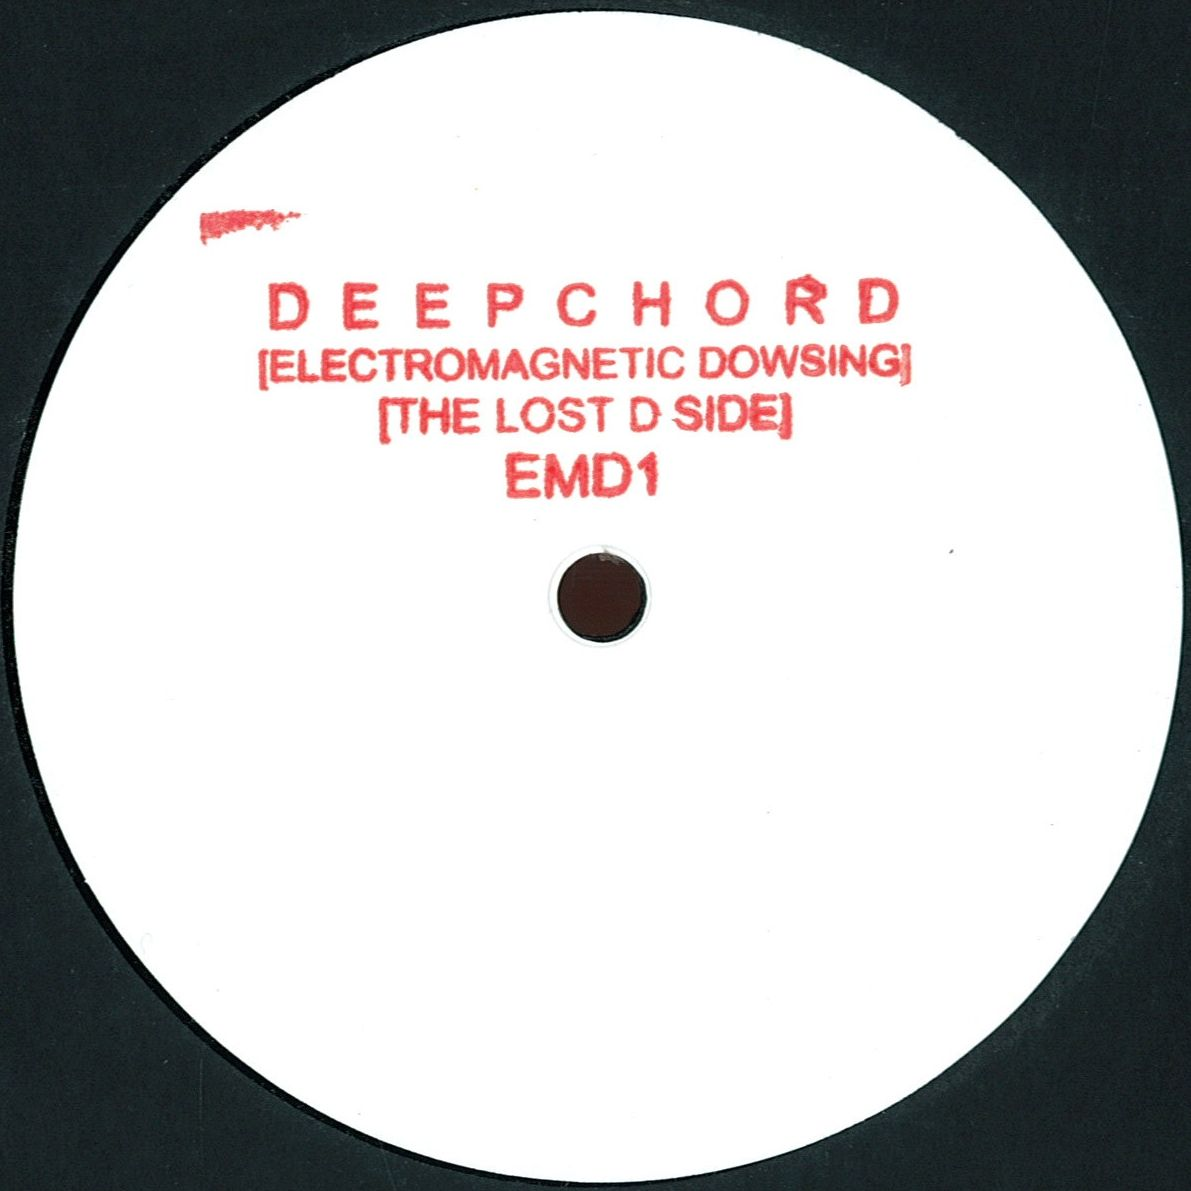 Deepchord Electro Magnetic Dowsing The Lost D Side